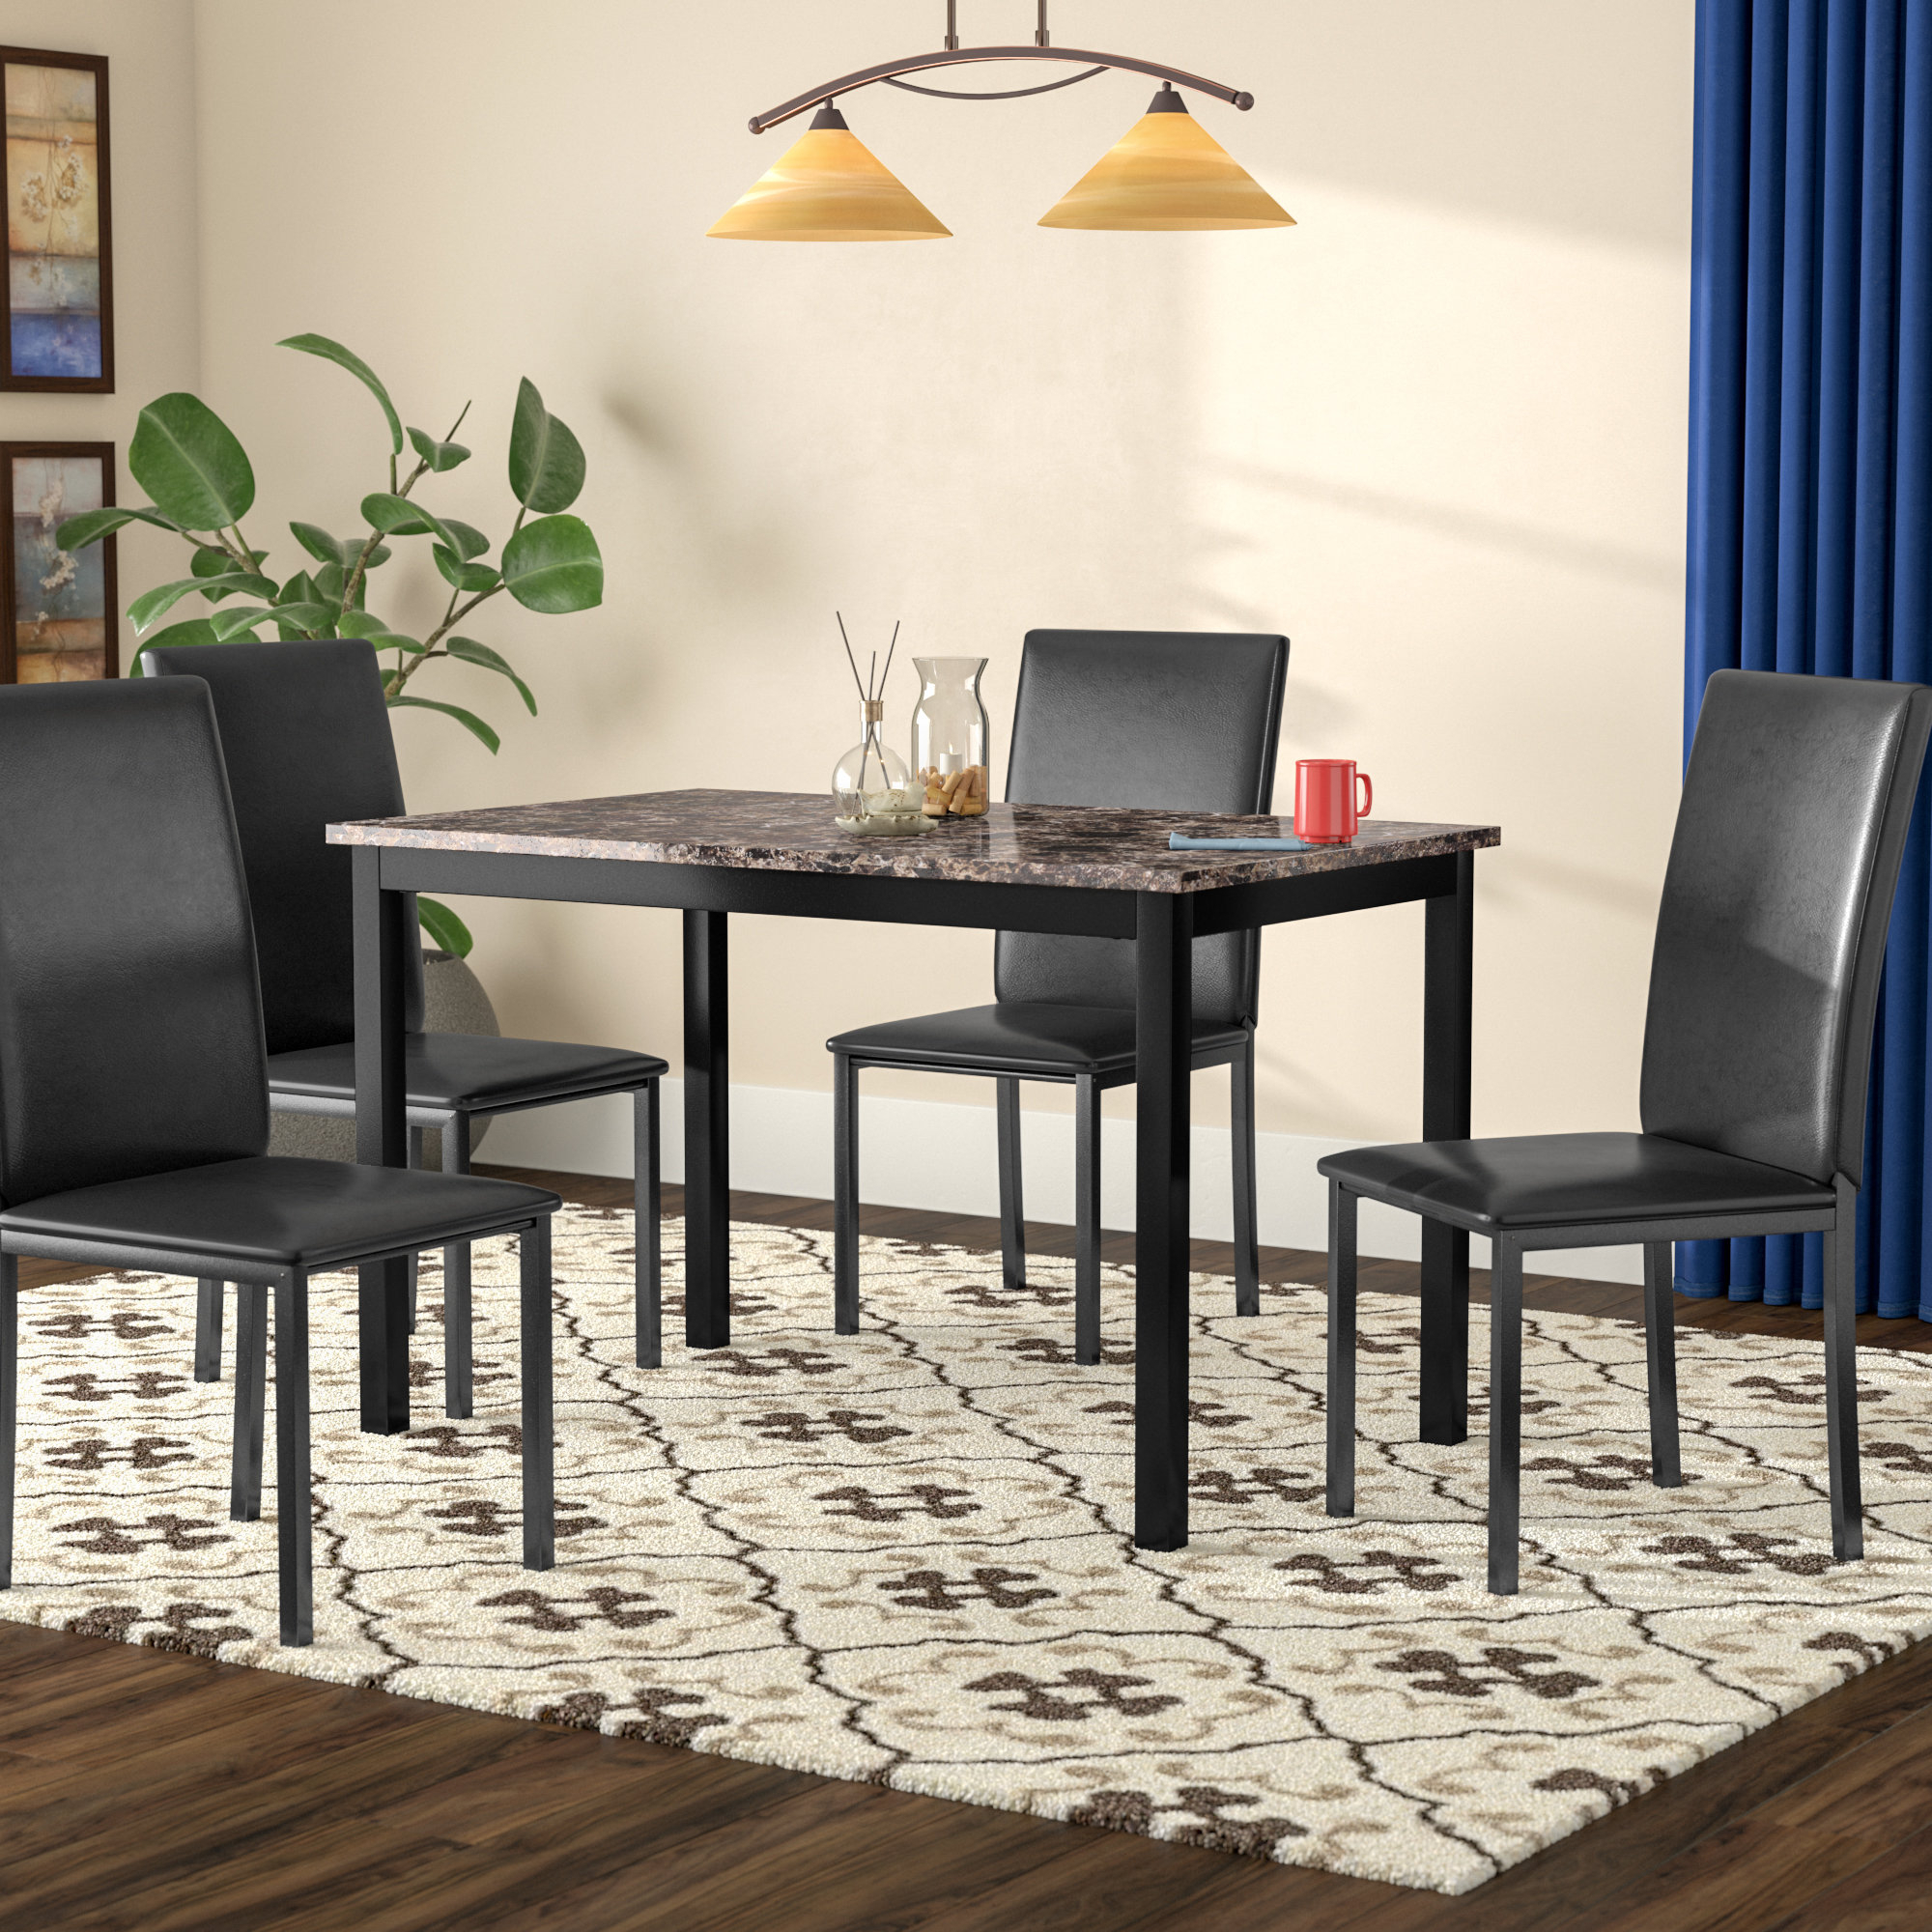 Rarick 5 Piece Solid Wood Dining Sets (Set Of 5) Intended For Popular Dining Room Sets For  (View 11 of 20)